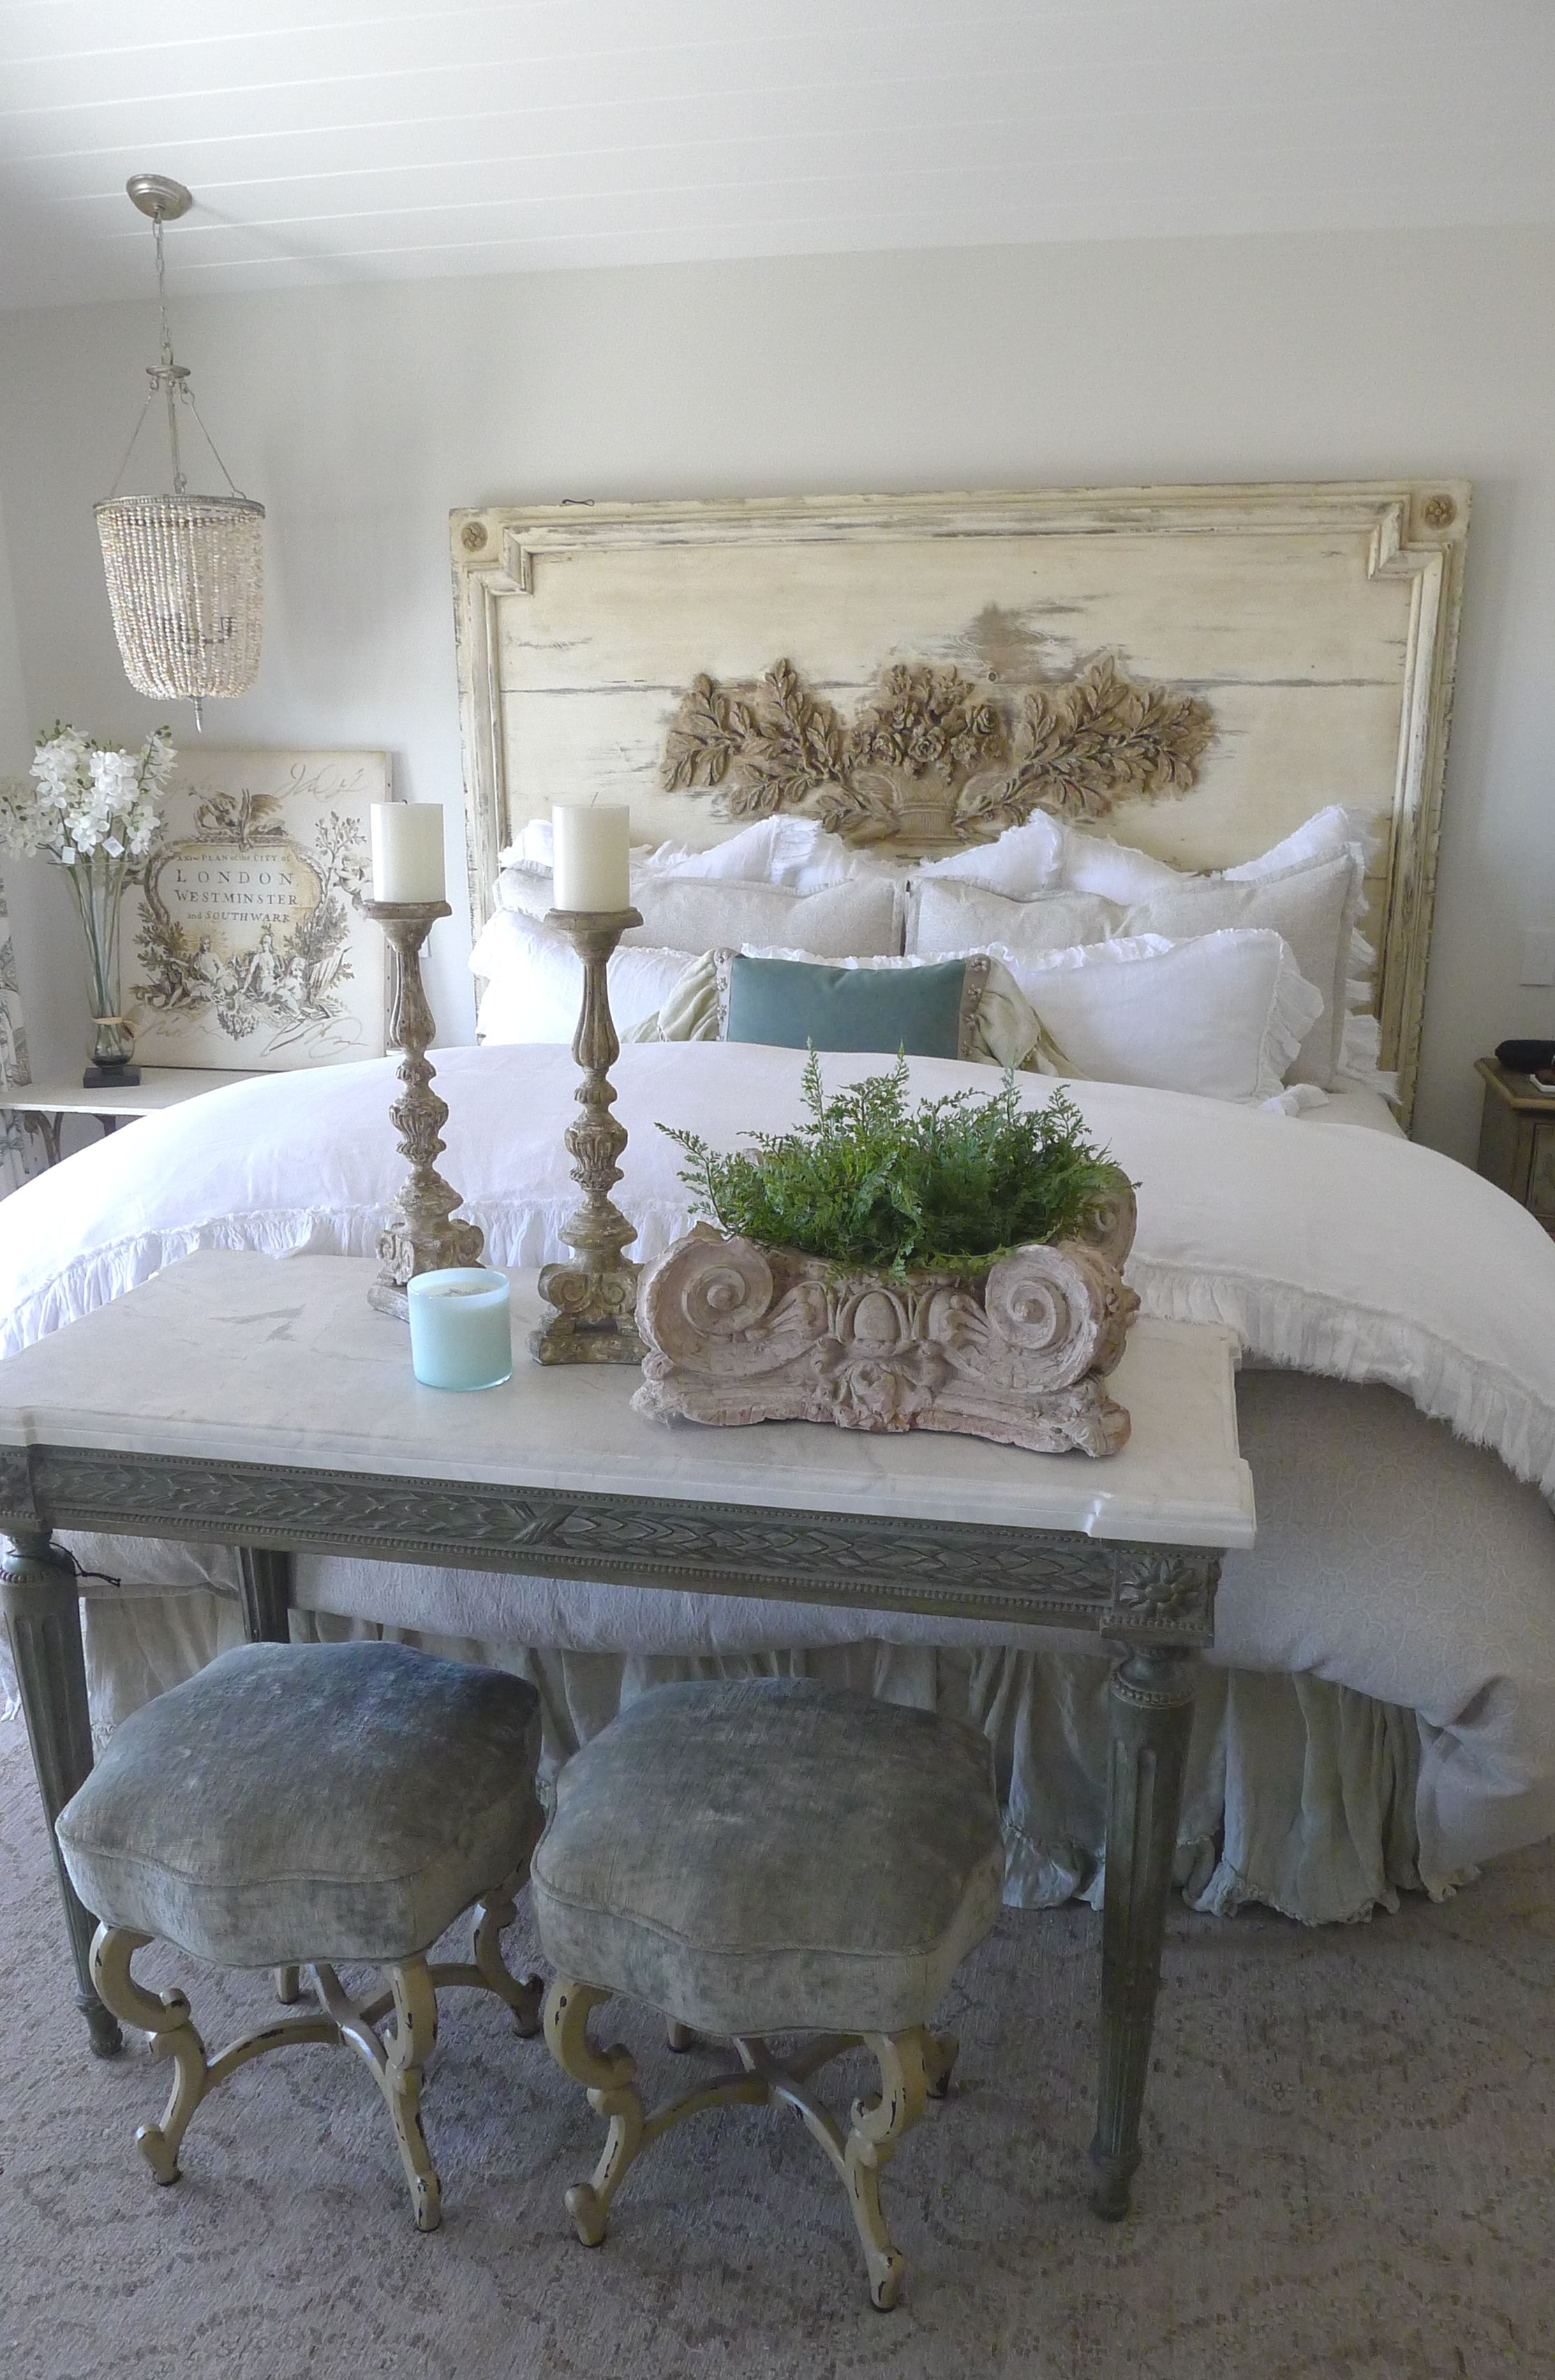 French Country Industrial Loft Urban Eclectic Furniture Shabby Chic Decor Bedroom Chic Master Bedroom Shabby Chic Master Bedroom